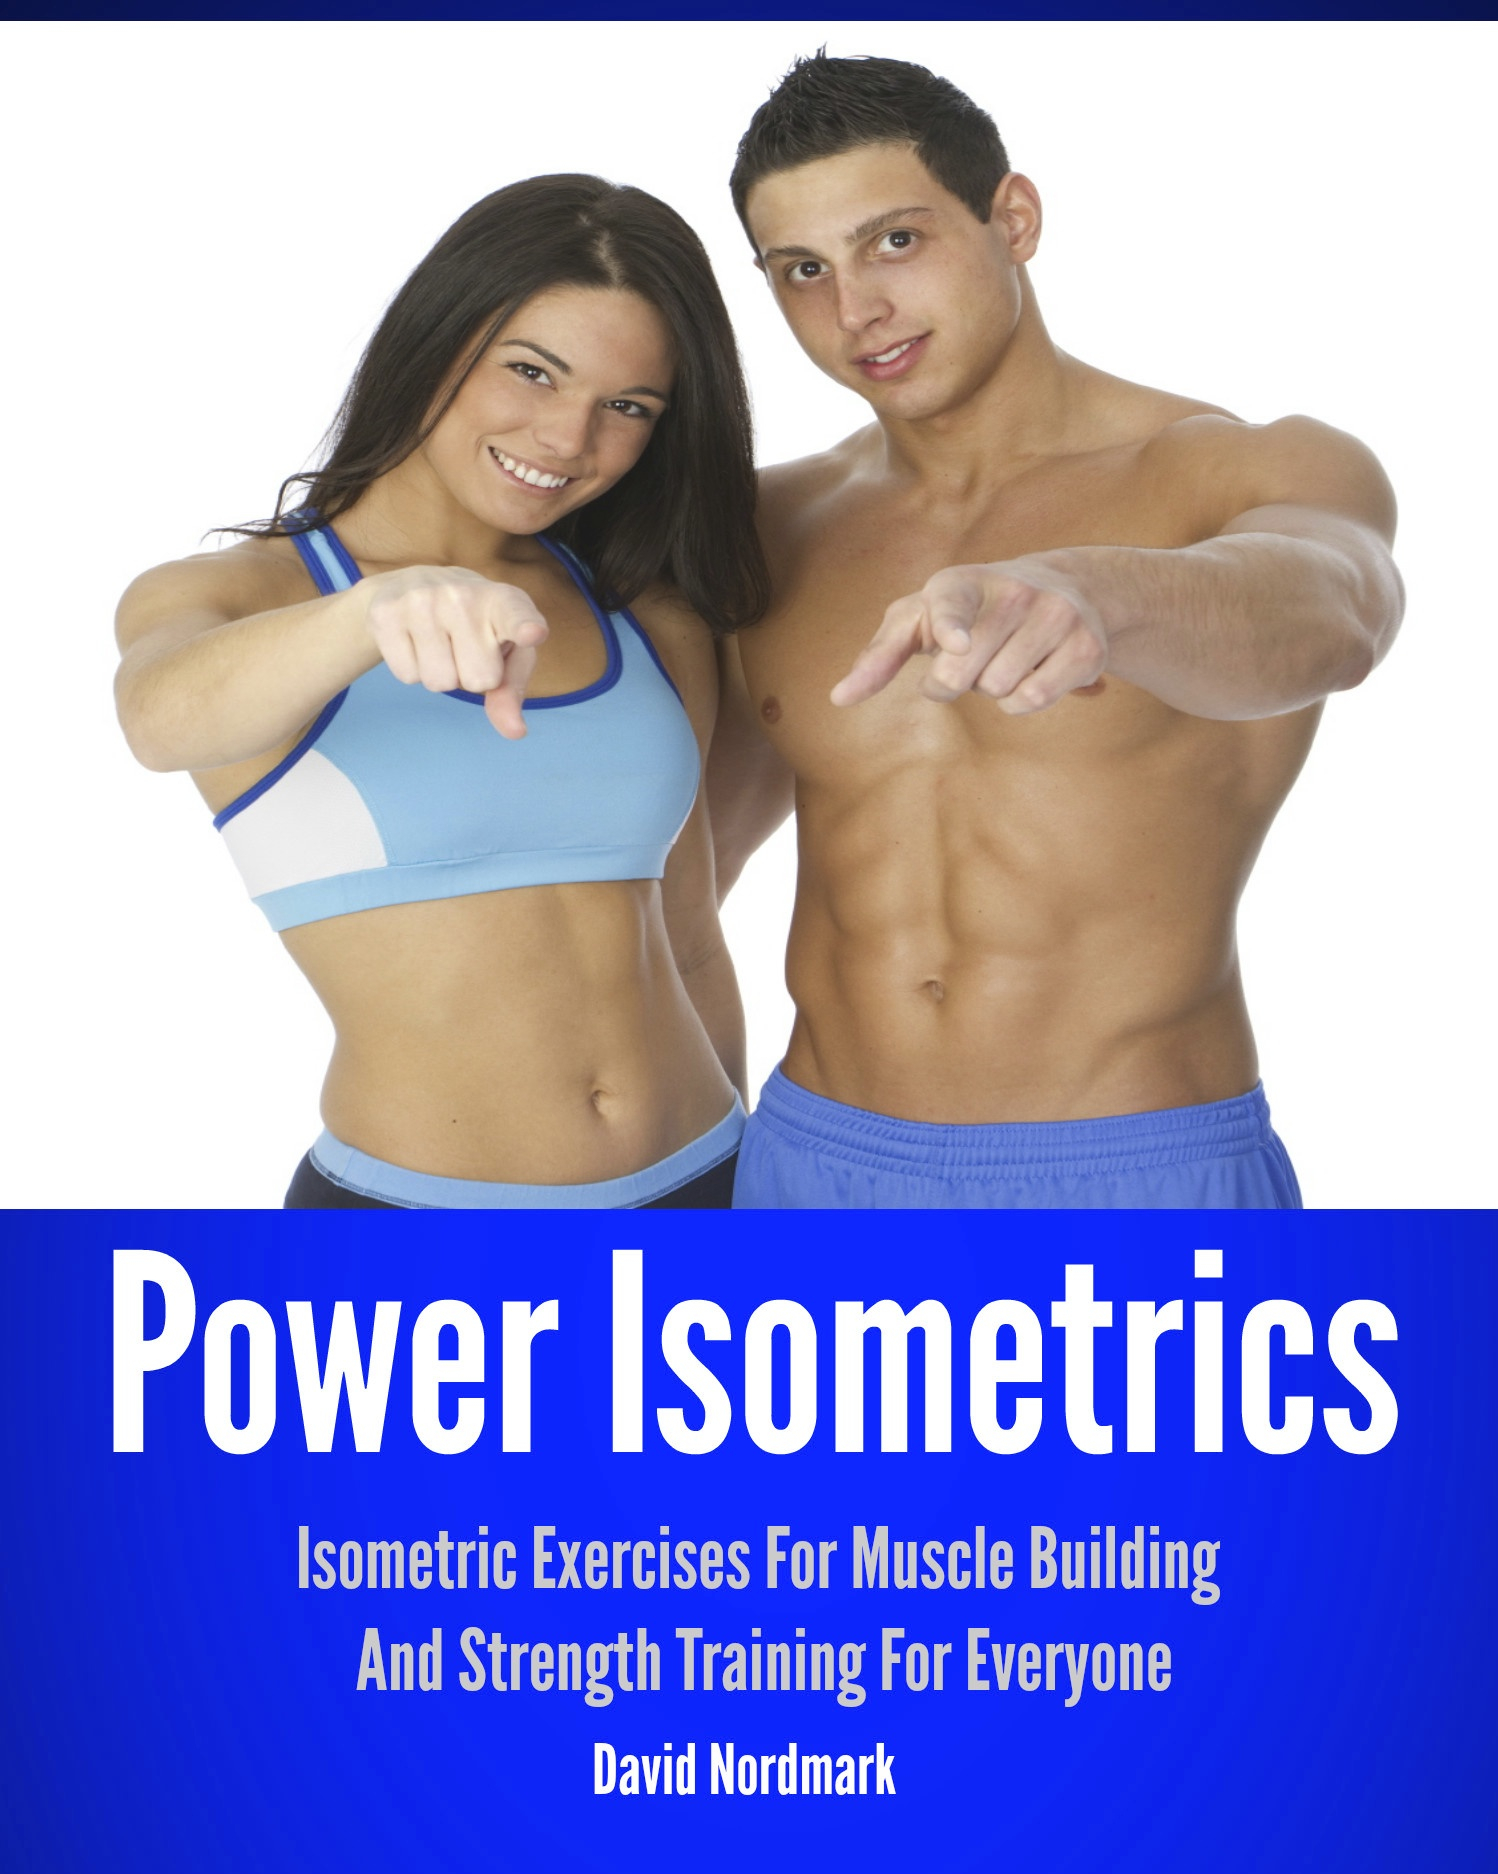 Power Isometrics By: David Nordmark